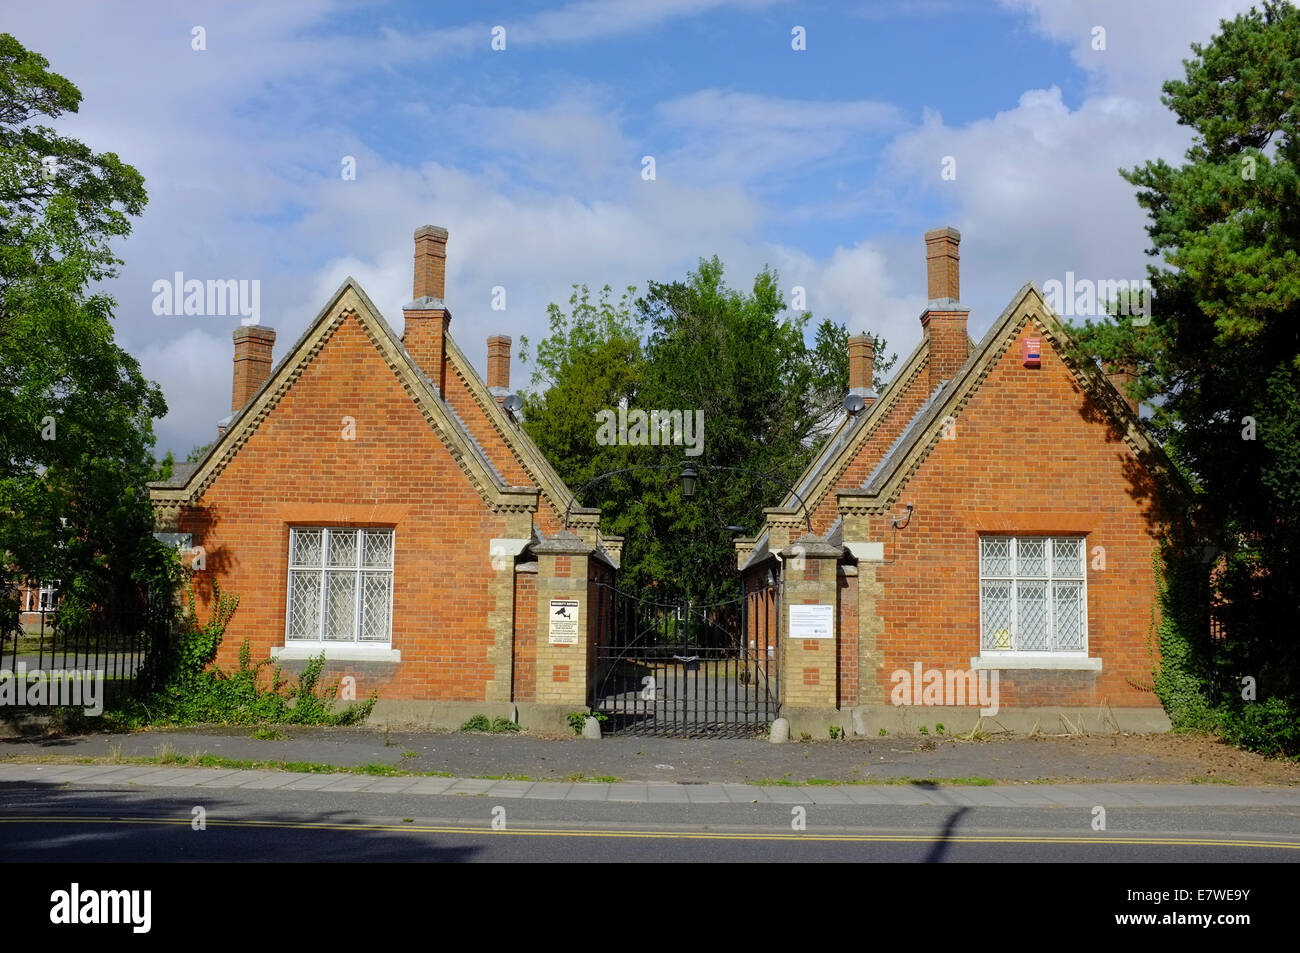 Tindal Centre a psychiatric secure unit in Aylesbury, Buckinghamshire, UK - Stock Image